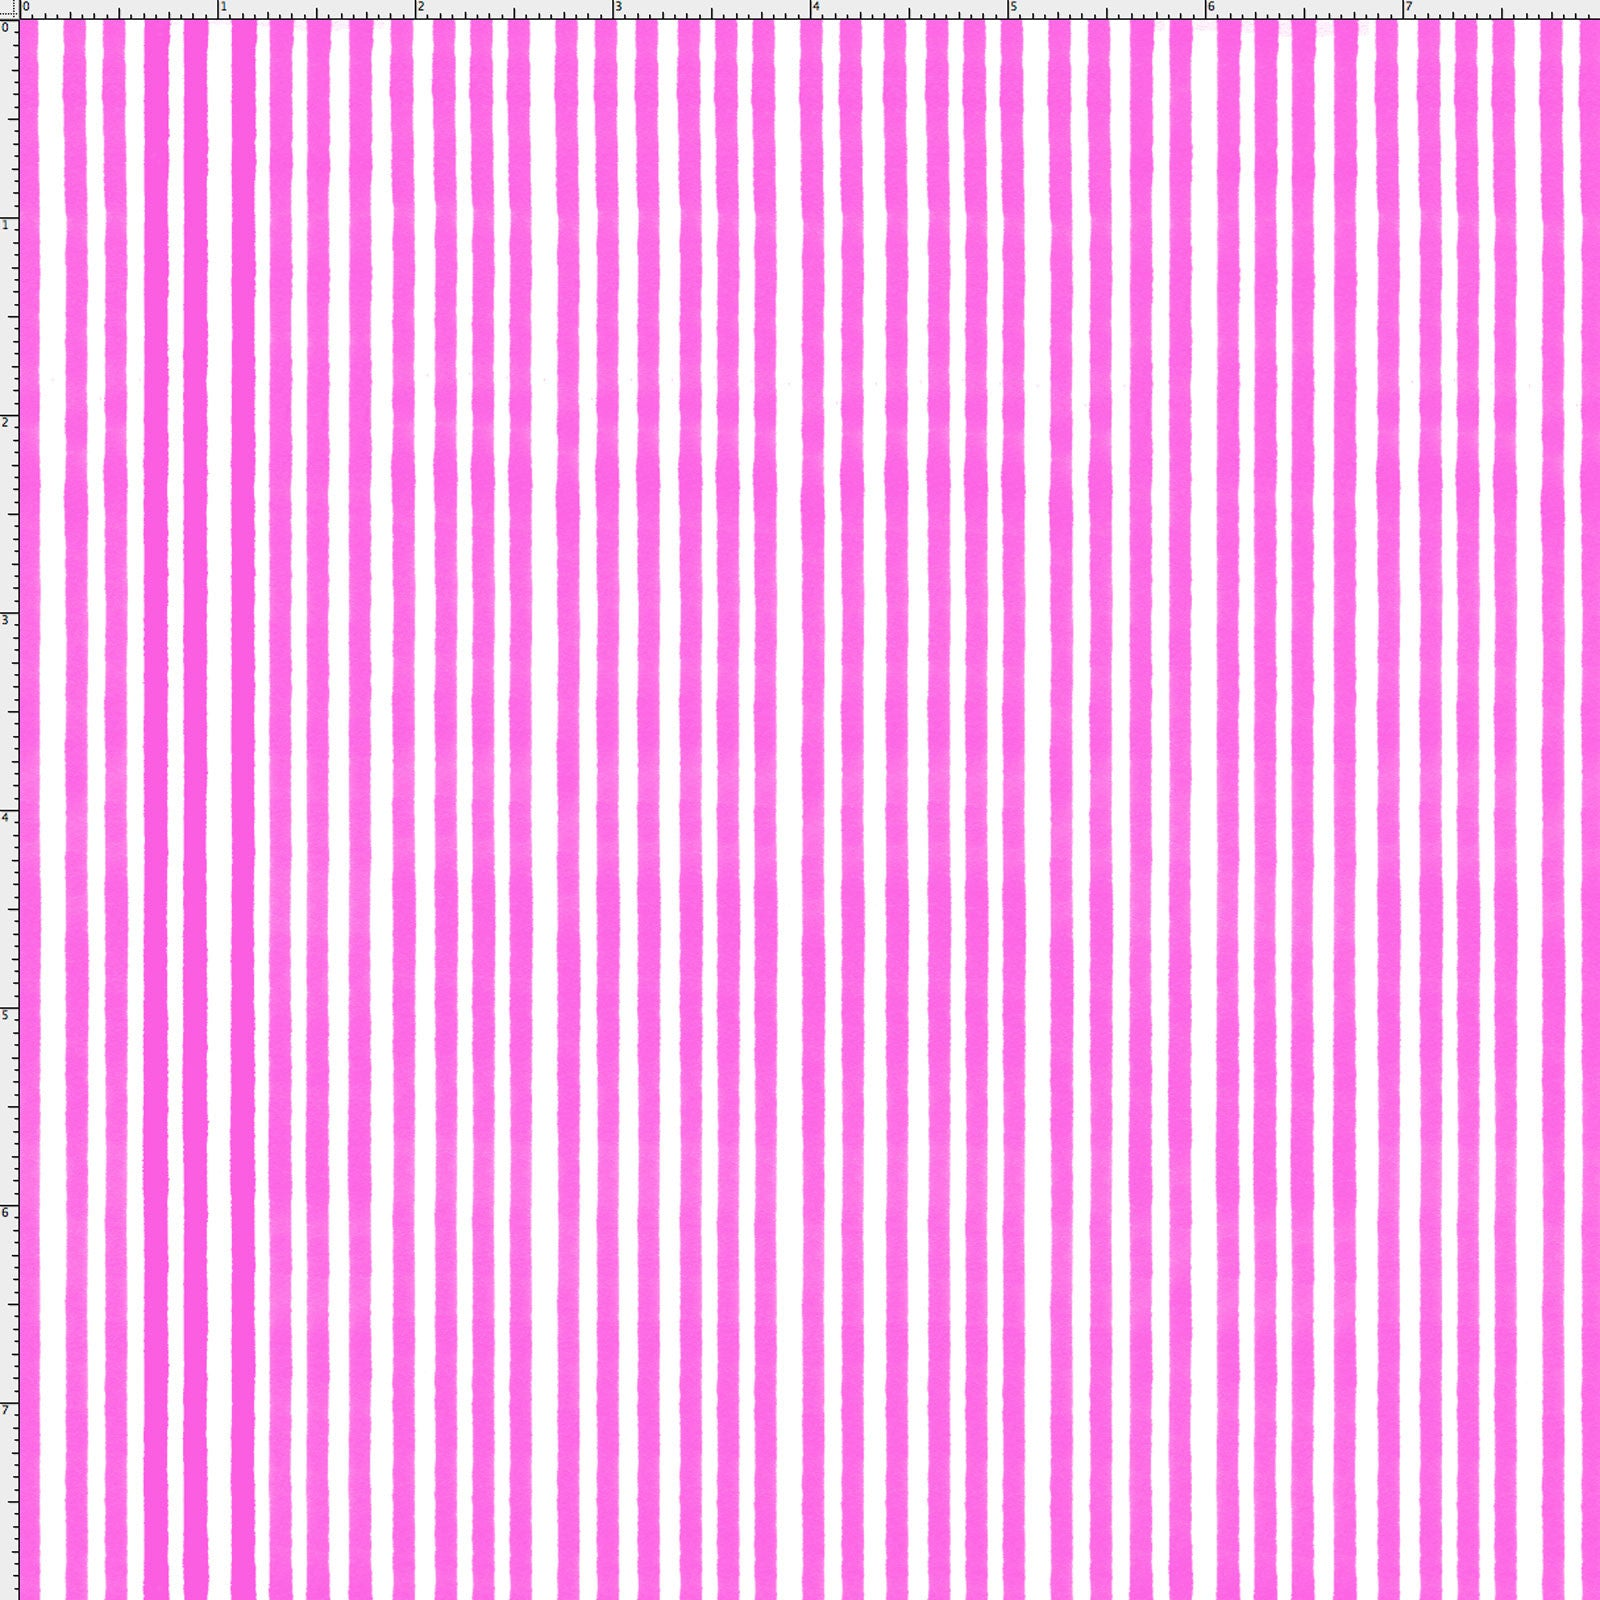 Lazy Stripe Cerise / White Fabric